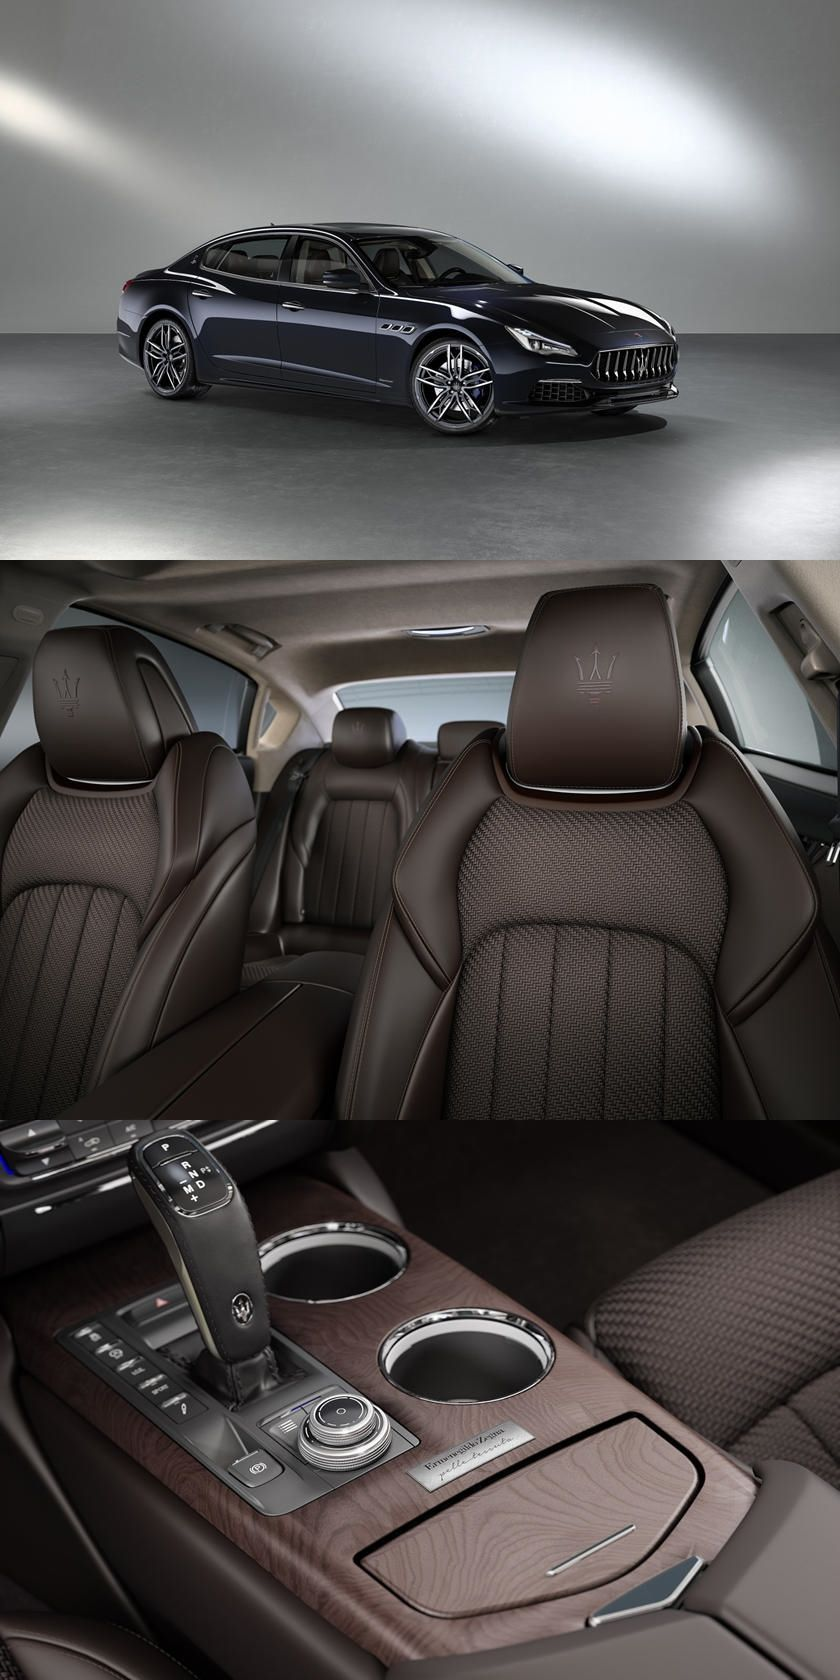 Limited Edition Maseratis Have Exquisite Woven Leather in